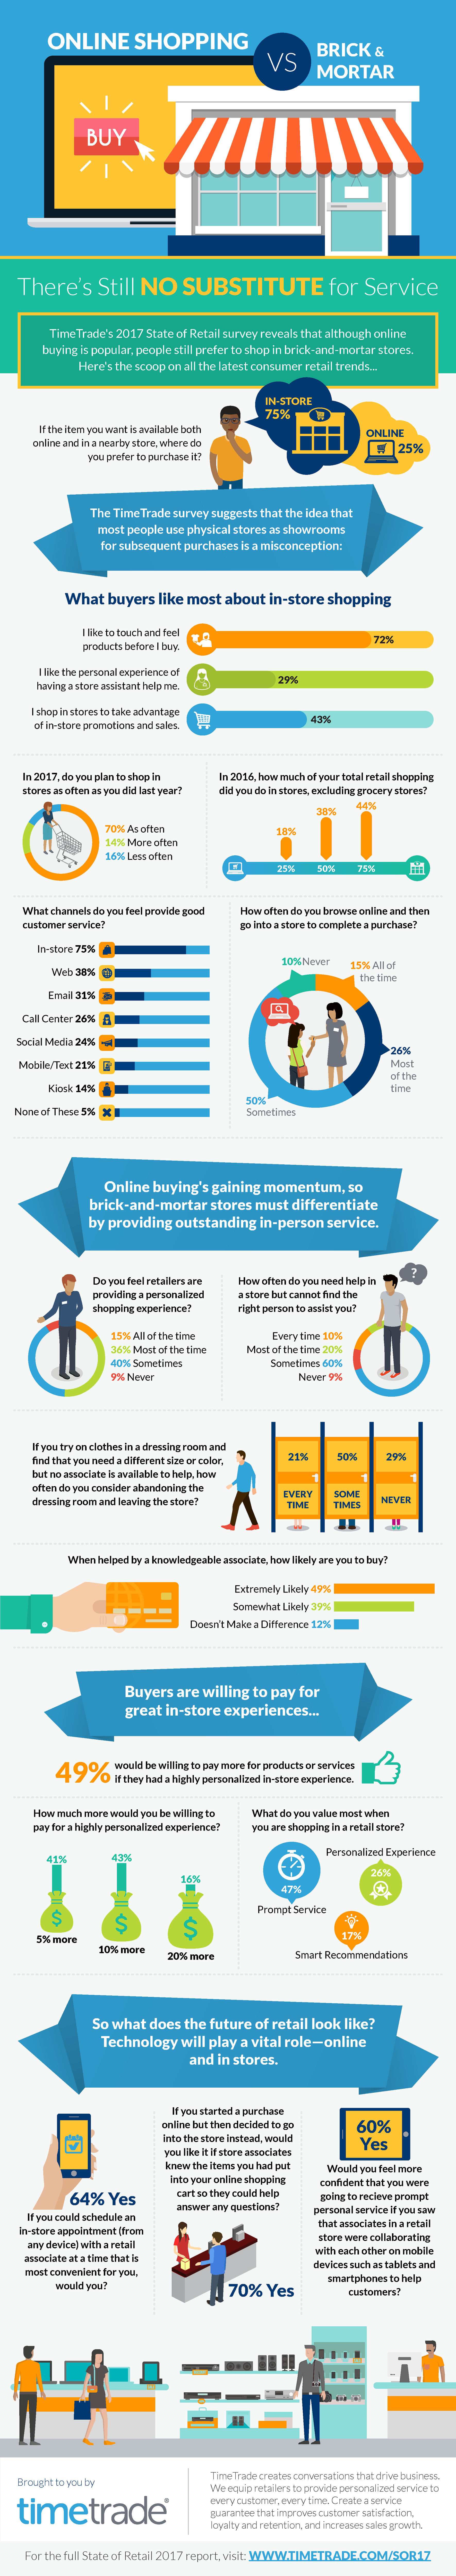 TimeTrade - State of Retail 2017 Infographic - March 10 2017